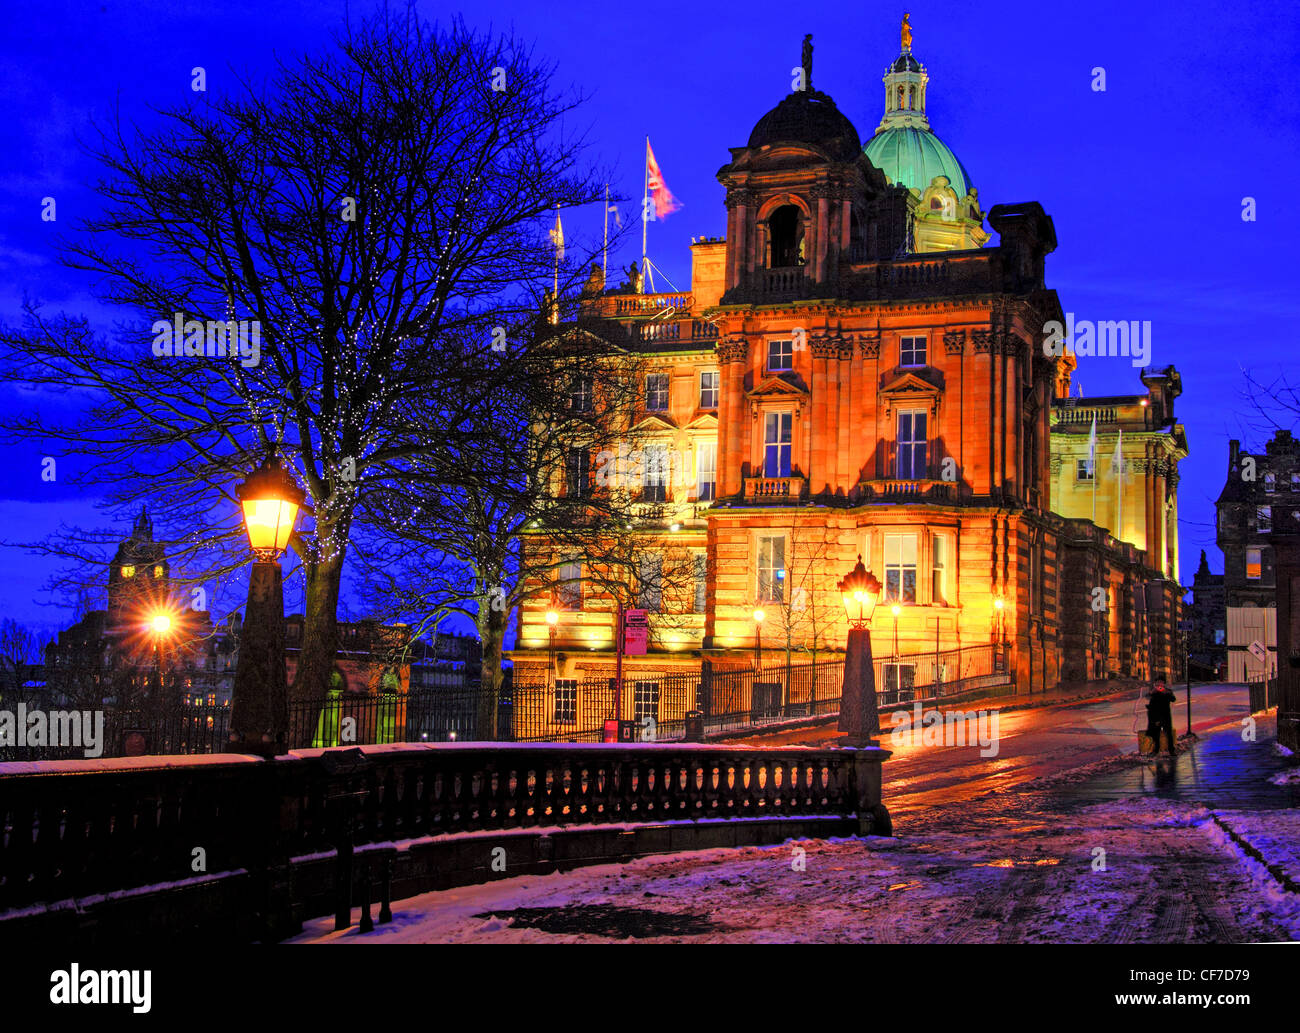 Dusk,at,the,Royal,Bank,of,Scotland,Building,The,Mound,Edinburgh,Lothian,Scotland,UK,in,icy,weather,winter,blue,hour,night,evening,ice,icy,weather,winter,evening,gotonysmith,romantic,ghost,tour,warm,lighting,lights,historic,flags,history,Banca,Rìoghail,na,h-Alba,PLC,north,bank,street,LEcosse,Edimbourg,Schotland,Schottland,La,Scozia,Edimburgo,Escocia,Edimburgo,snow,snowy,street,streets,romantic,financial,crash,bailout,nightshot,shot,tourist,victorian,scottish,independance,independence,home,rule,devolution,parliament,SNP,national,party,@Hotpixuk,Government,2014,Scots,vote,voting,gotonysmith,Buy Pictures of,Buy Images Of,Scotlands History,Scotlands History